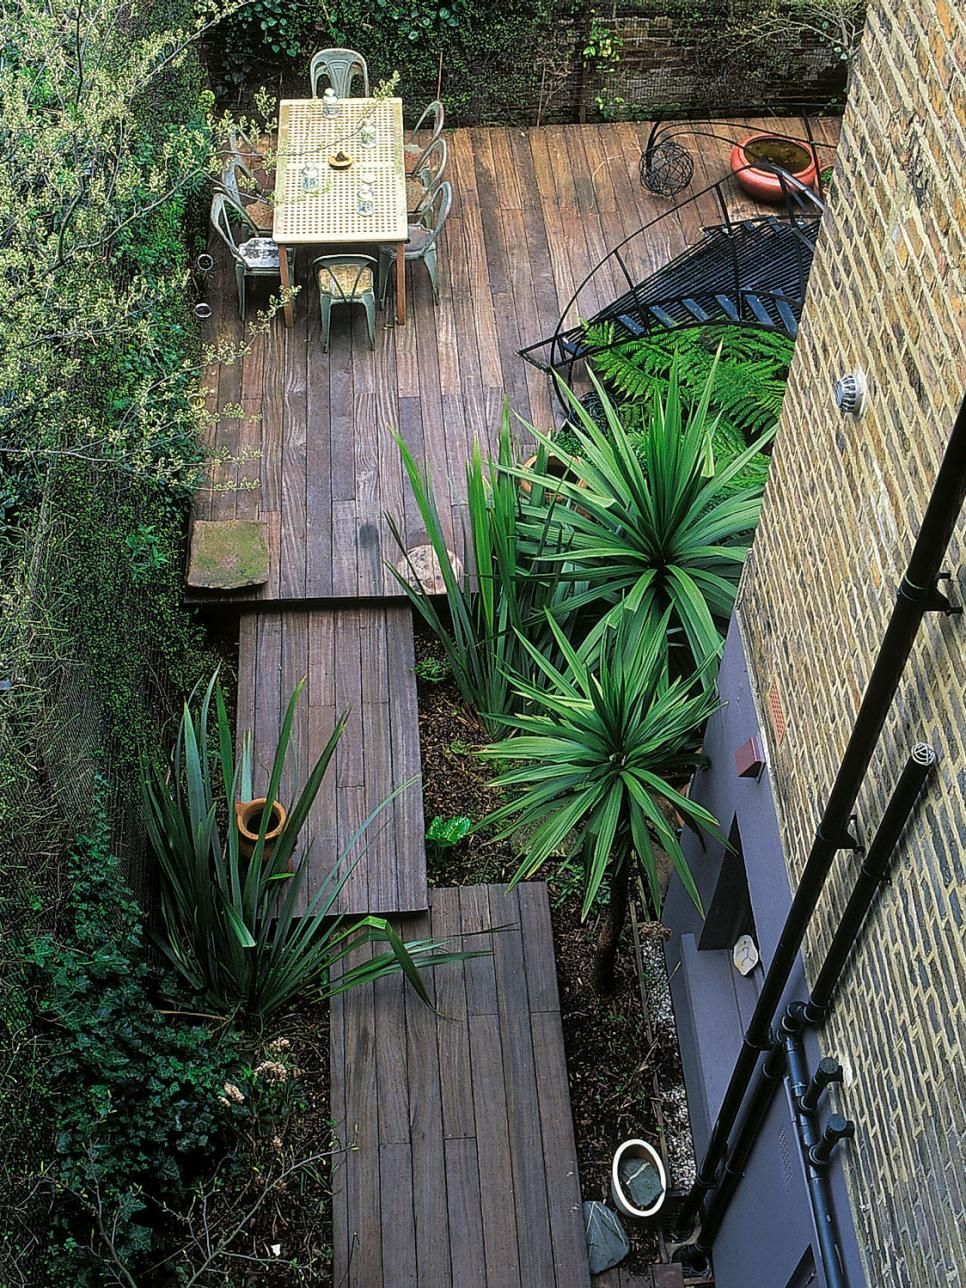 Landscaping Ideas for an L-Shaped Garden | Landscape ... on Patio Shape Designs id=13303